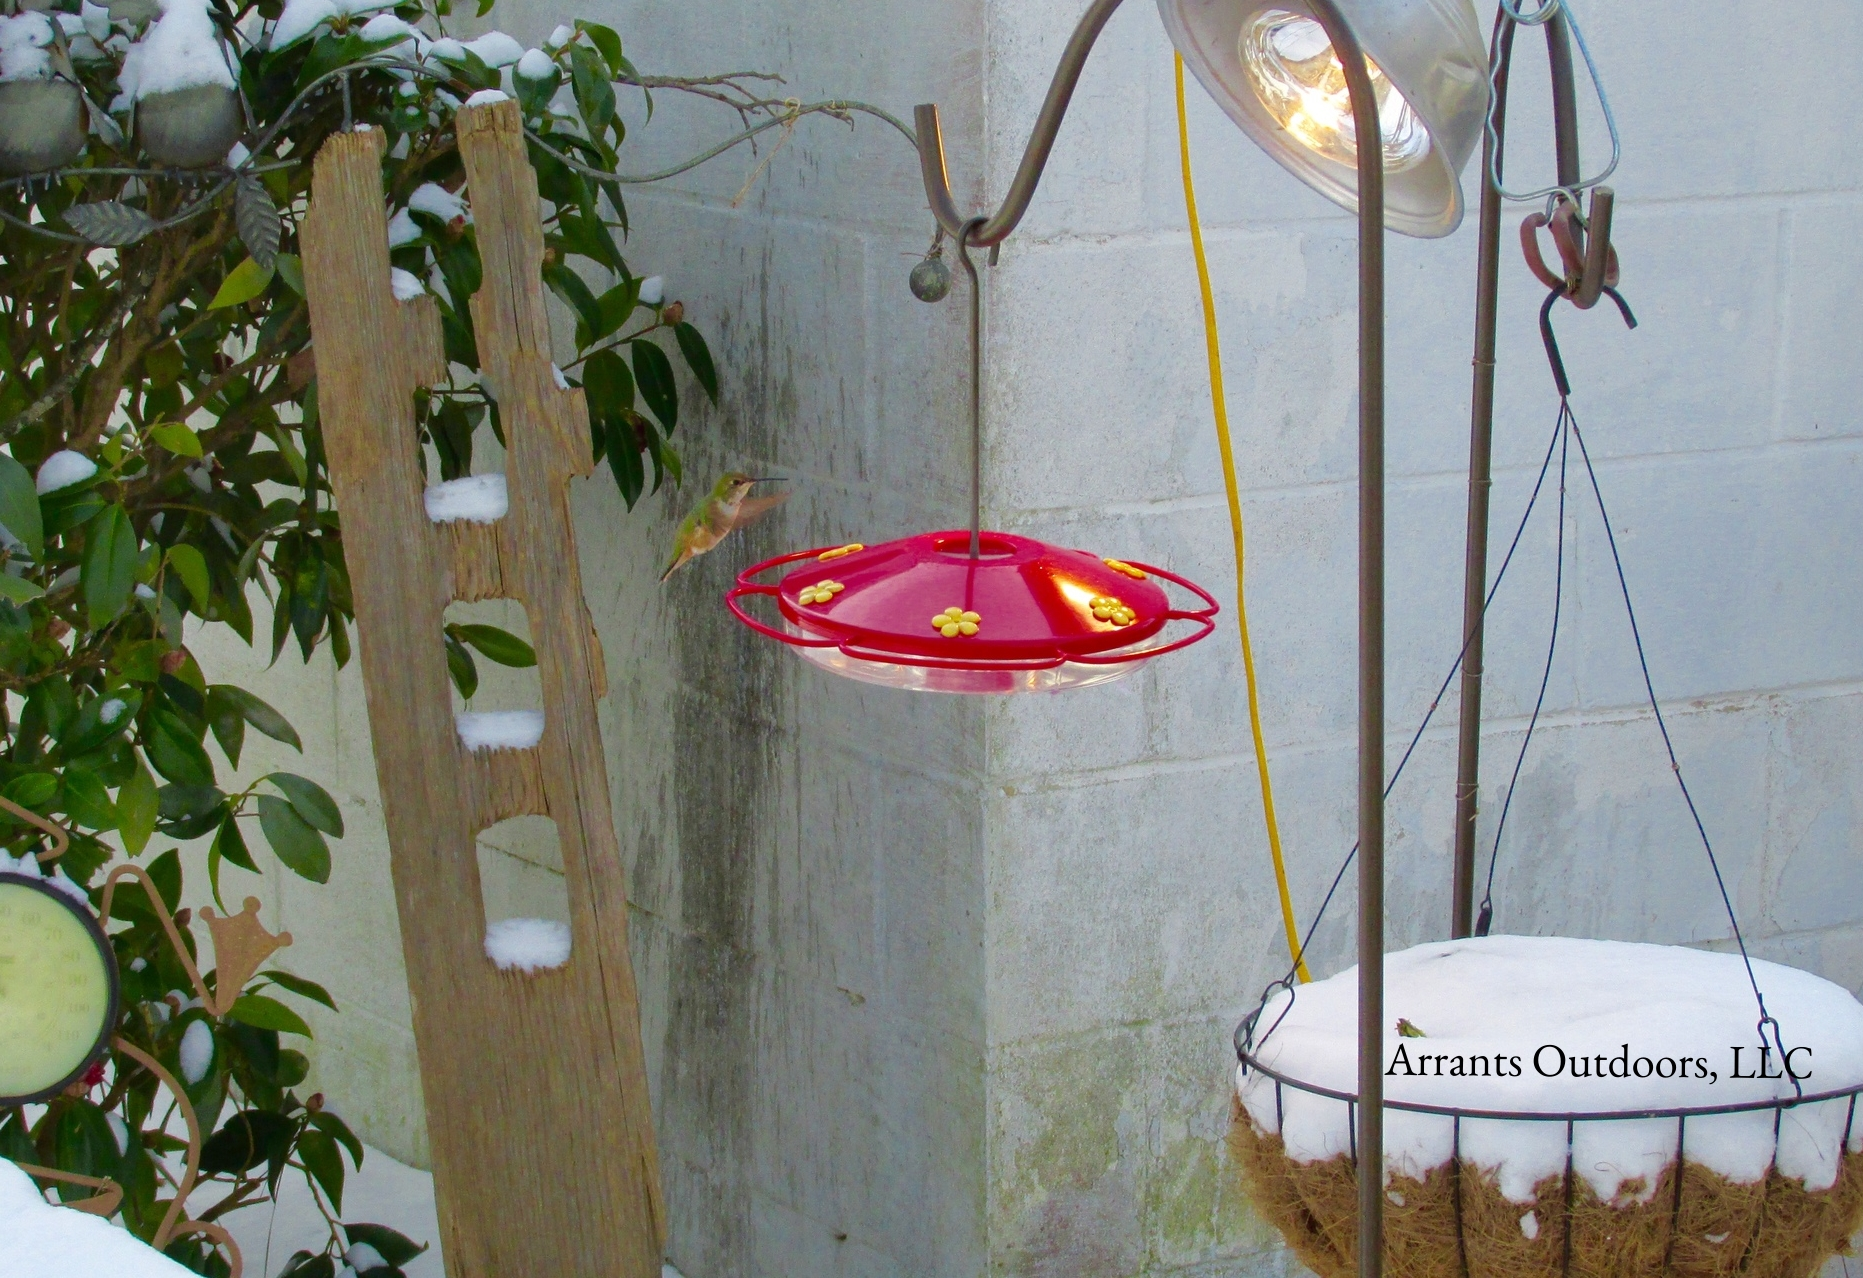 Rufous Hummingbird (Selasphorus rufus ) at feeder in the snow. A heat lamp and fresh nectar was provided throughout her accidental winter stay. Showing up in December 2013, she stayed until April 2014. (Click to enlarge)